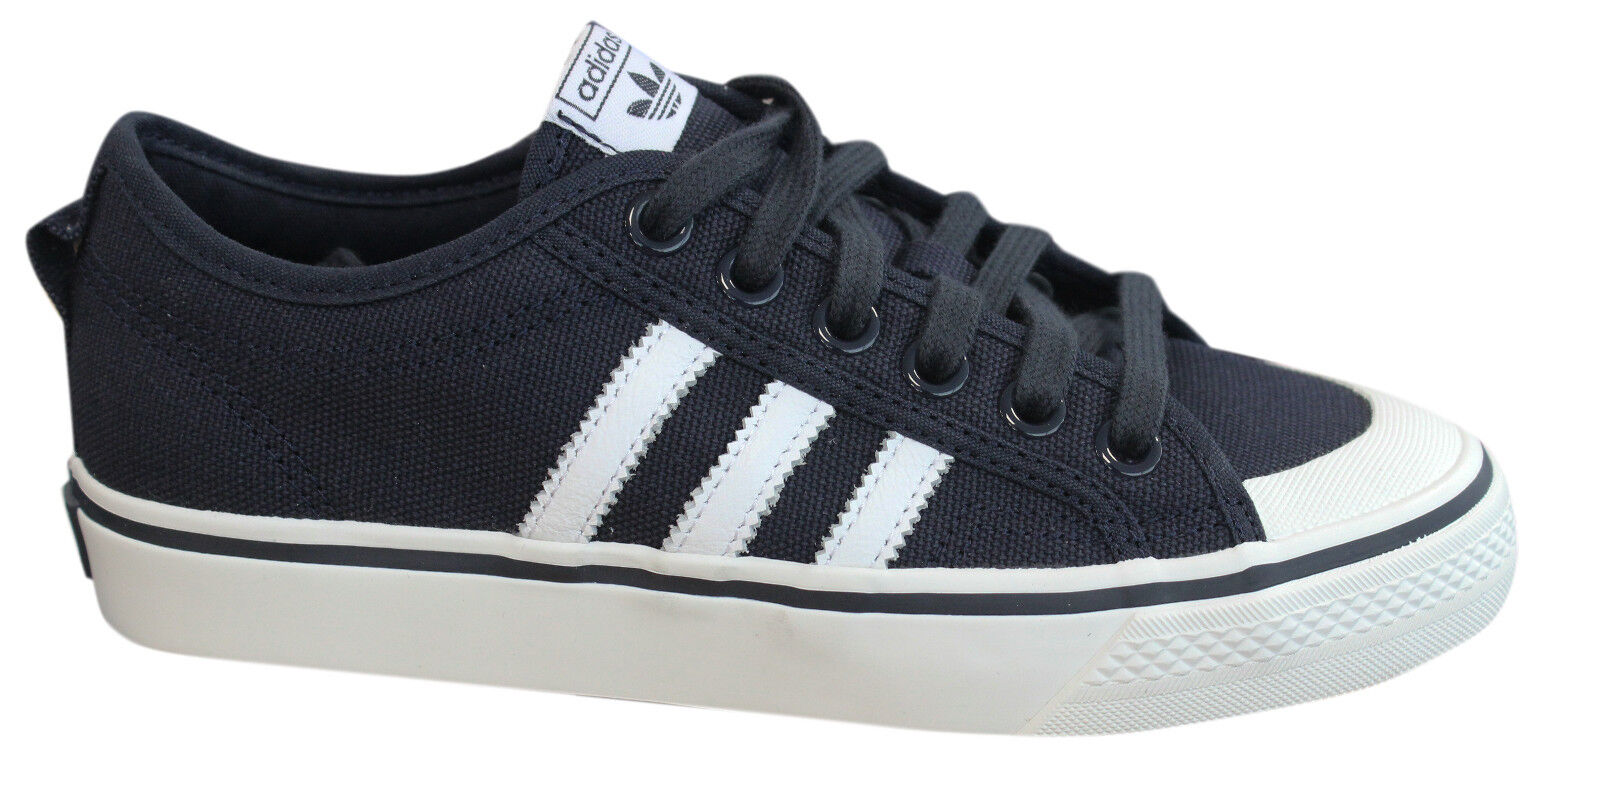 pretty nice 12a7d f480a Details about Adidas Originals Nizza Mens Trainers Low Lace Up Shoes Navy  Blue BZ0499 U89